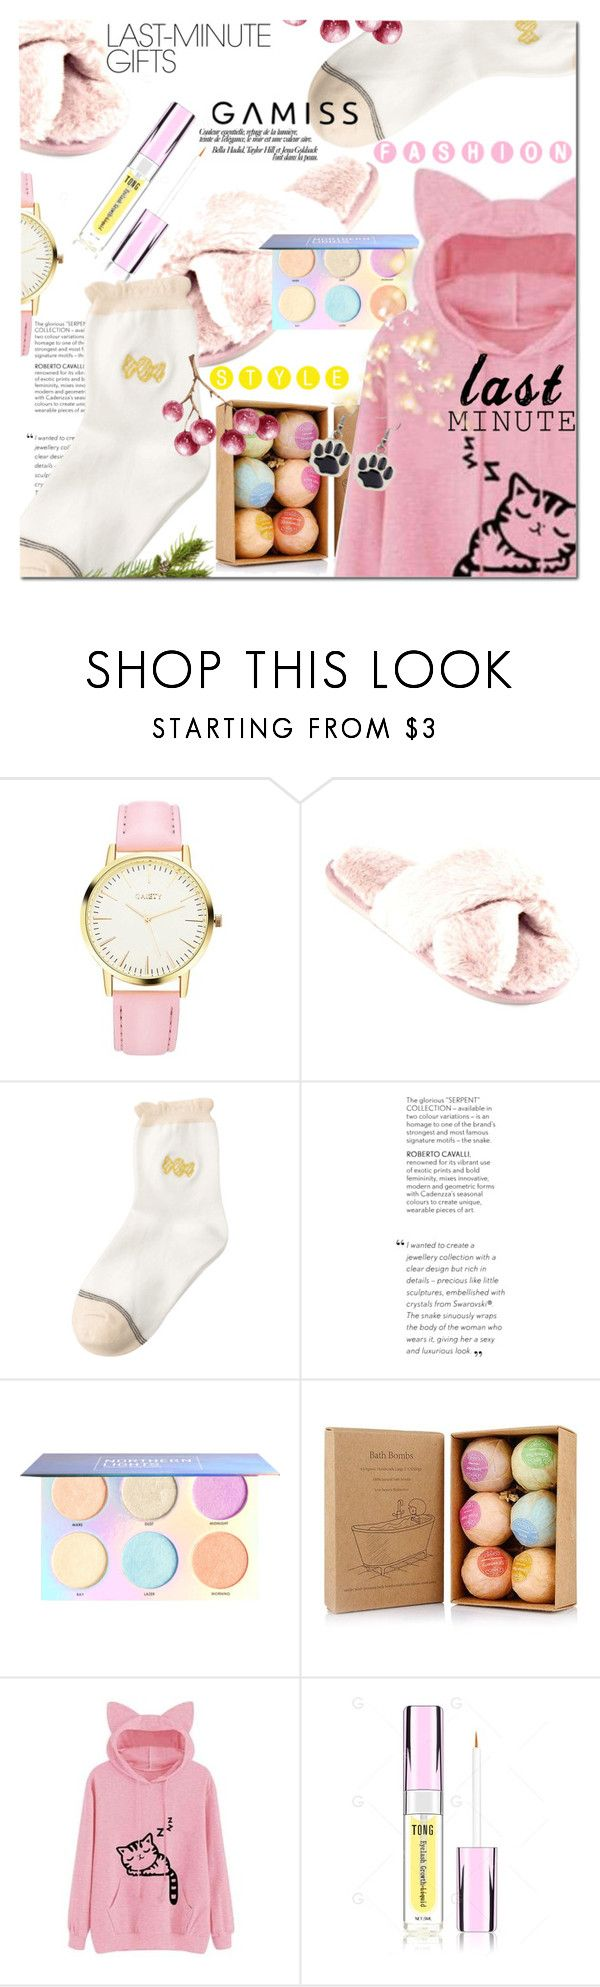 """""""Last-Minute Gifts-Gamiss"""" by kroton ❤ liked on Polyvore featuring contest, gifts and gamiss"""